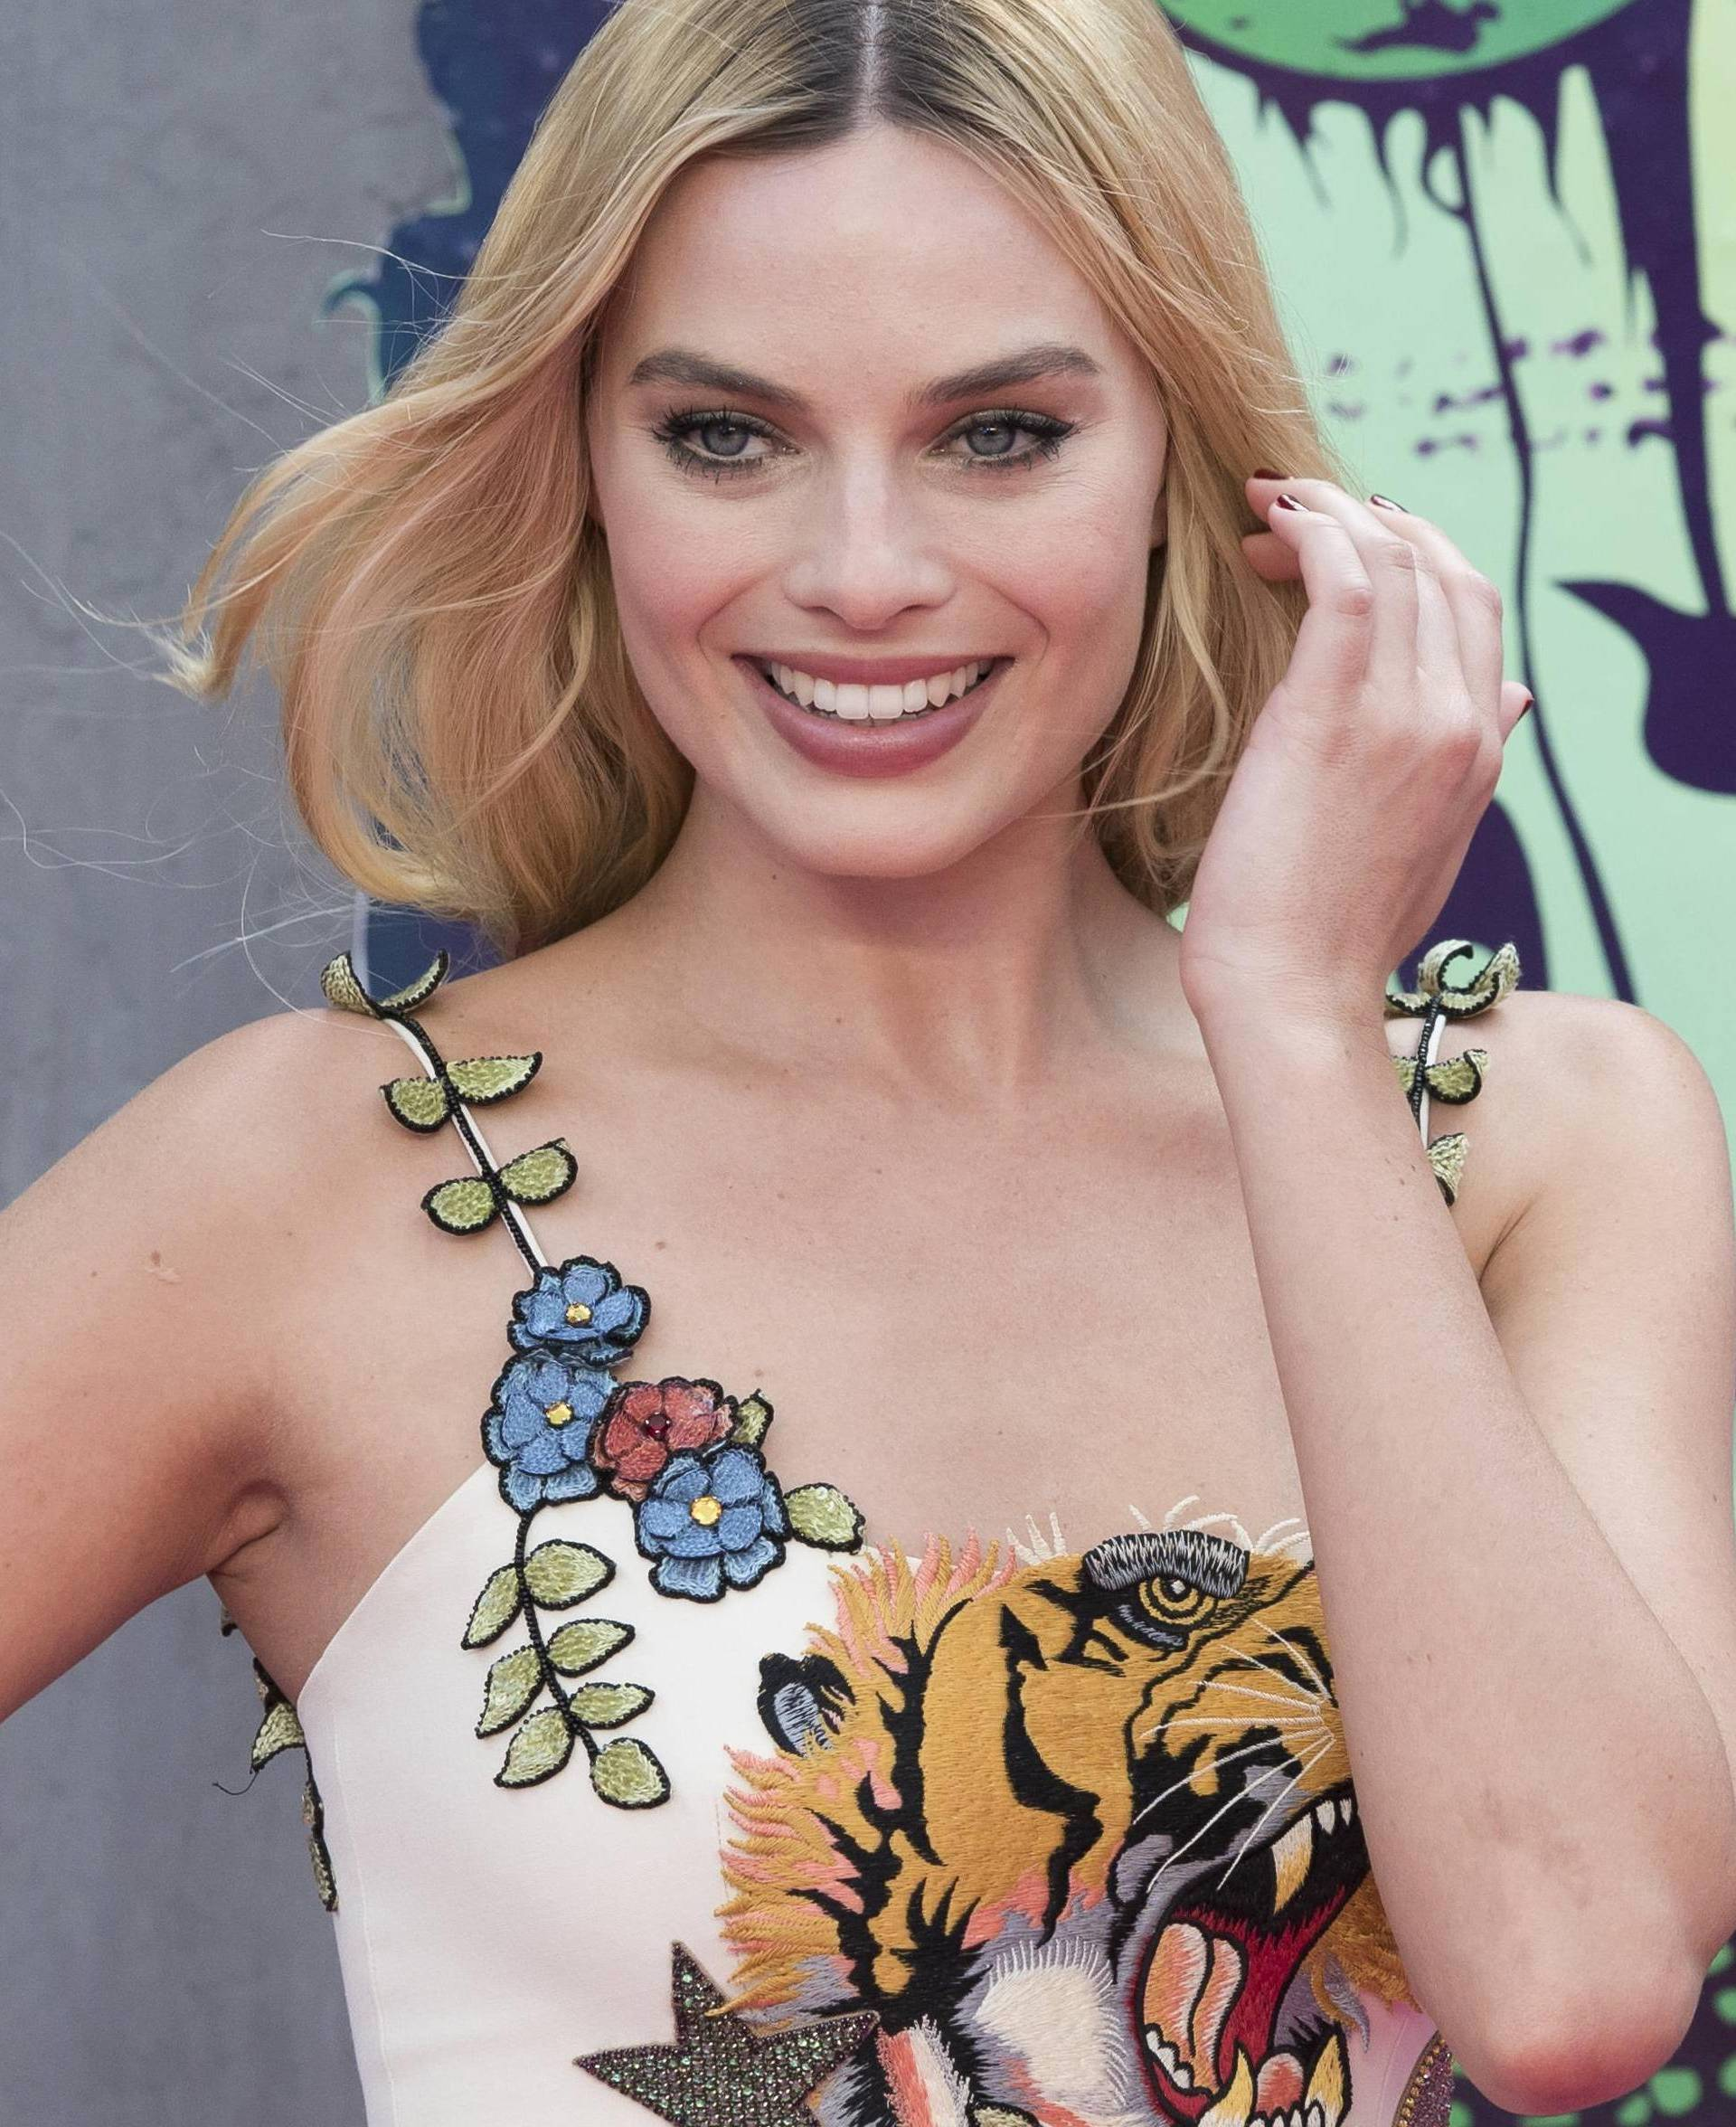 Margot Robbie attends Suicide Squad film premiere at Leicester Square in London. 03/08/2016